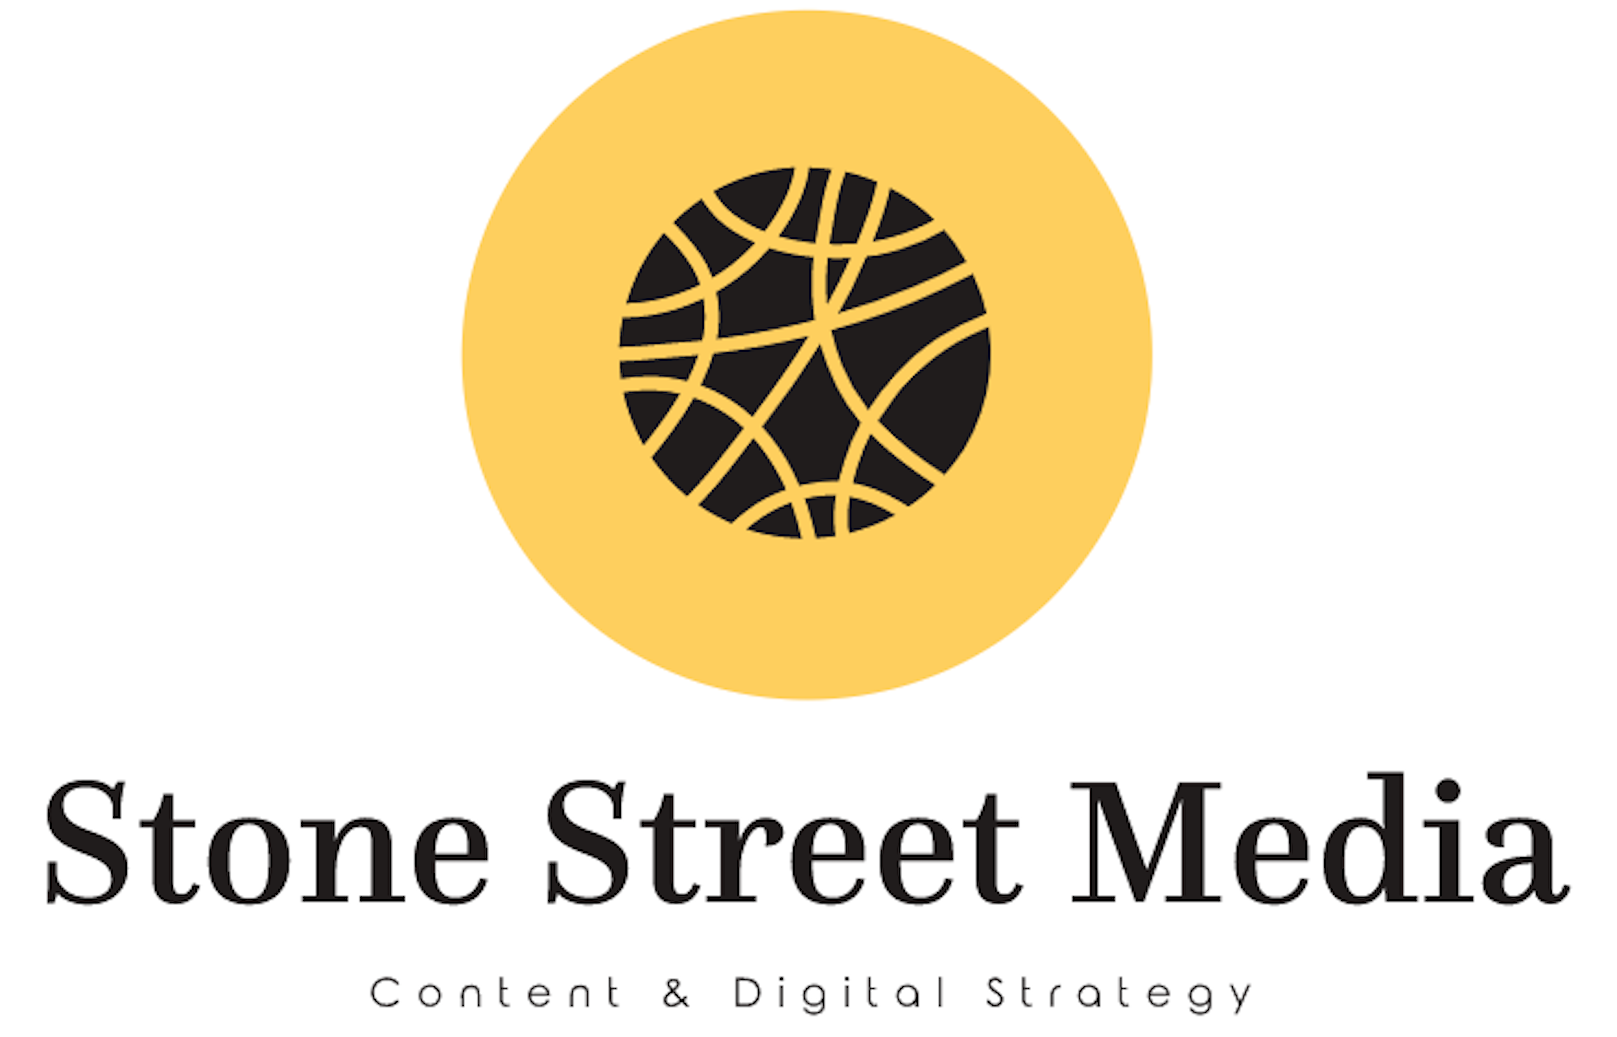 Stone Street Media: content & digital strategy